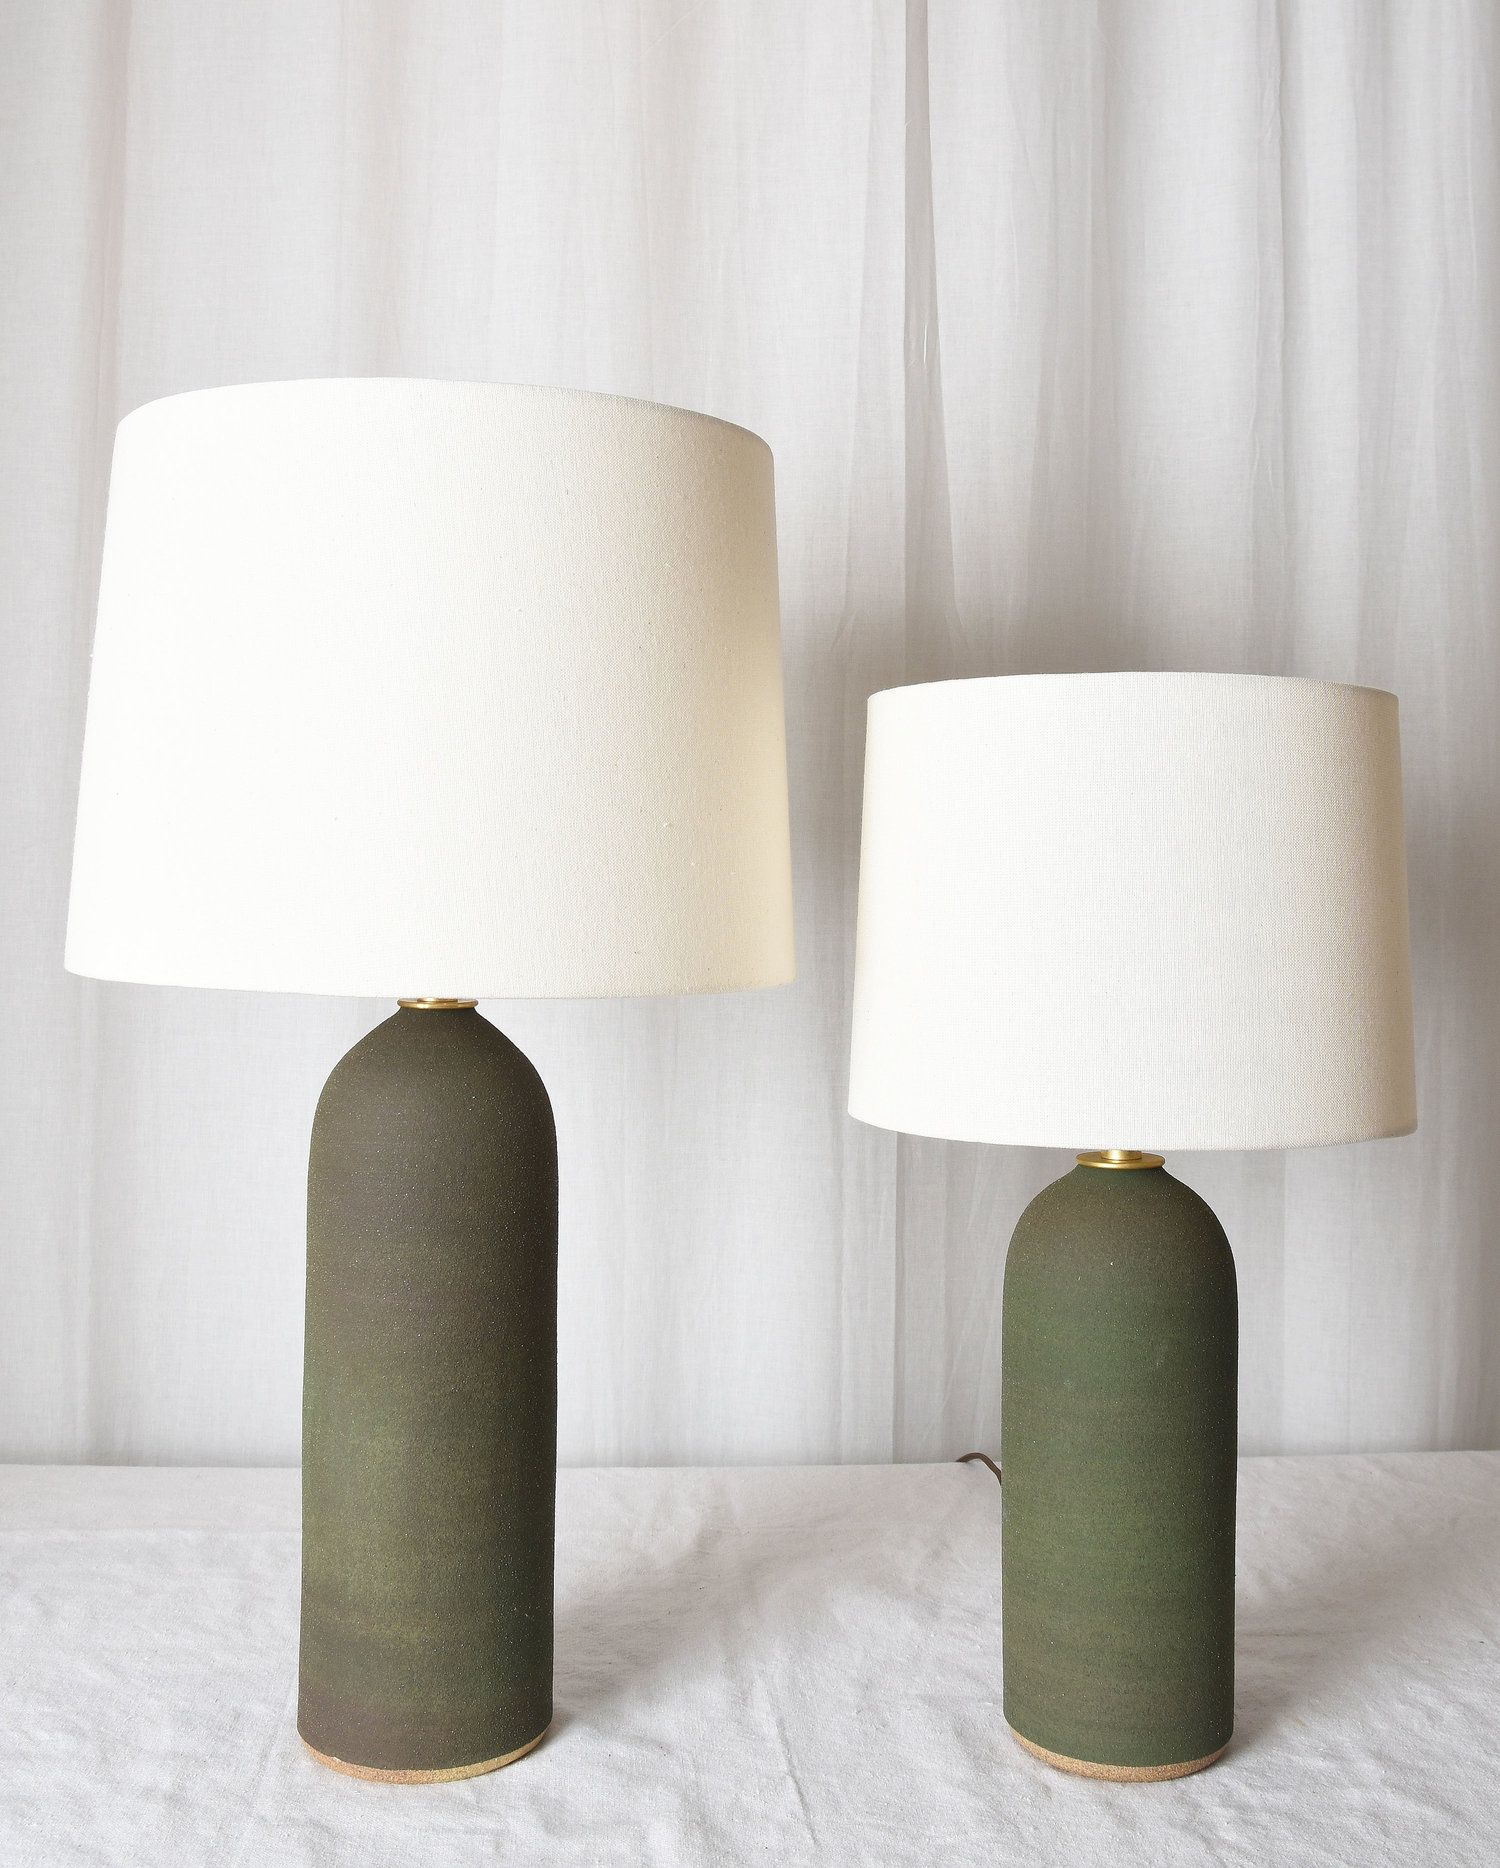 Matte dark olive lamps in 2020 | Table lamps for bedroom ...